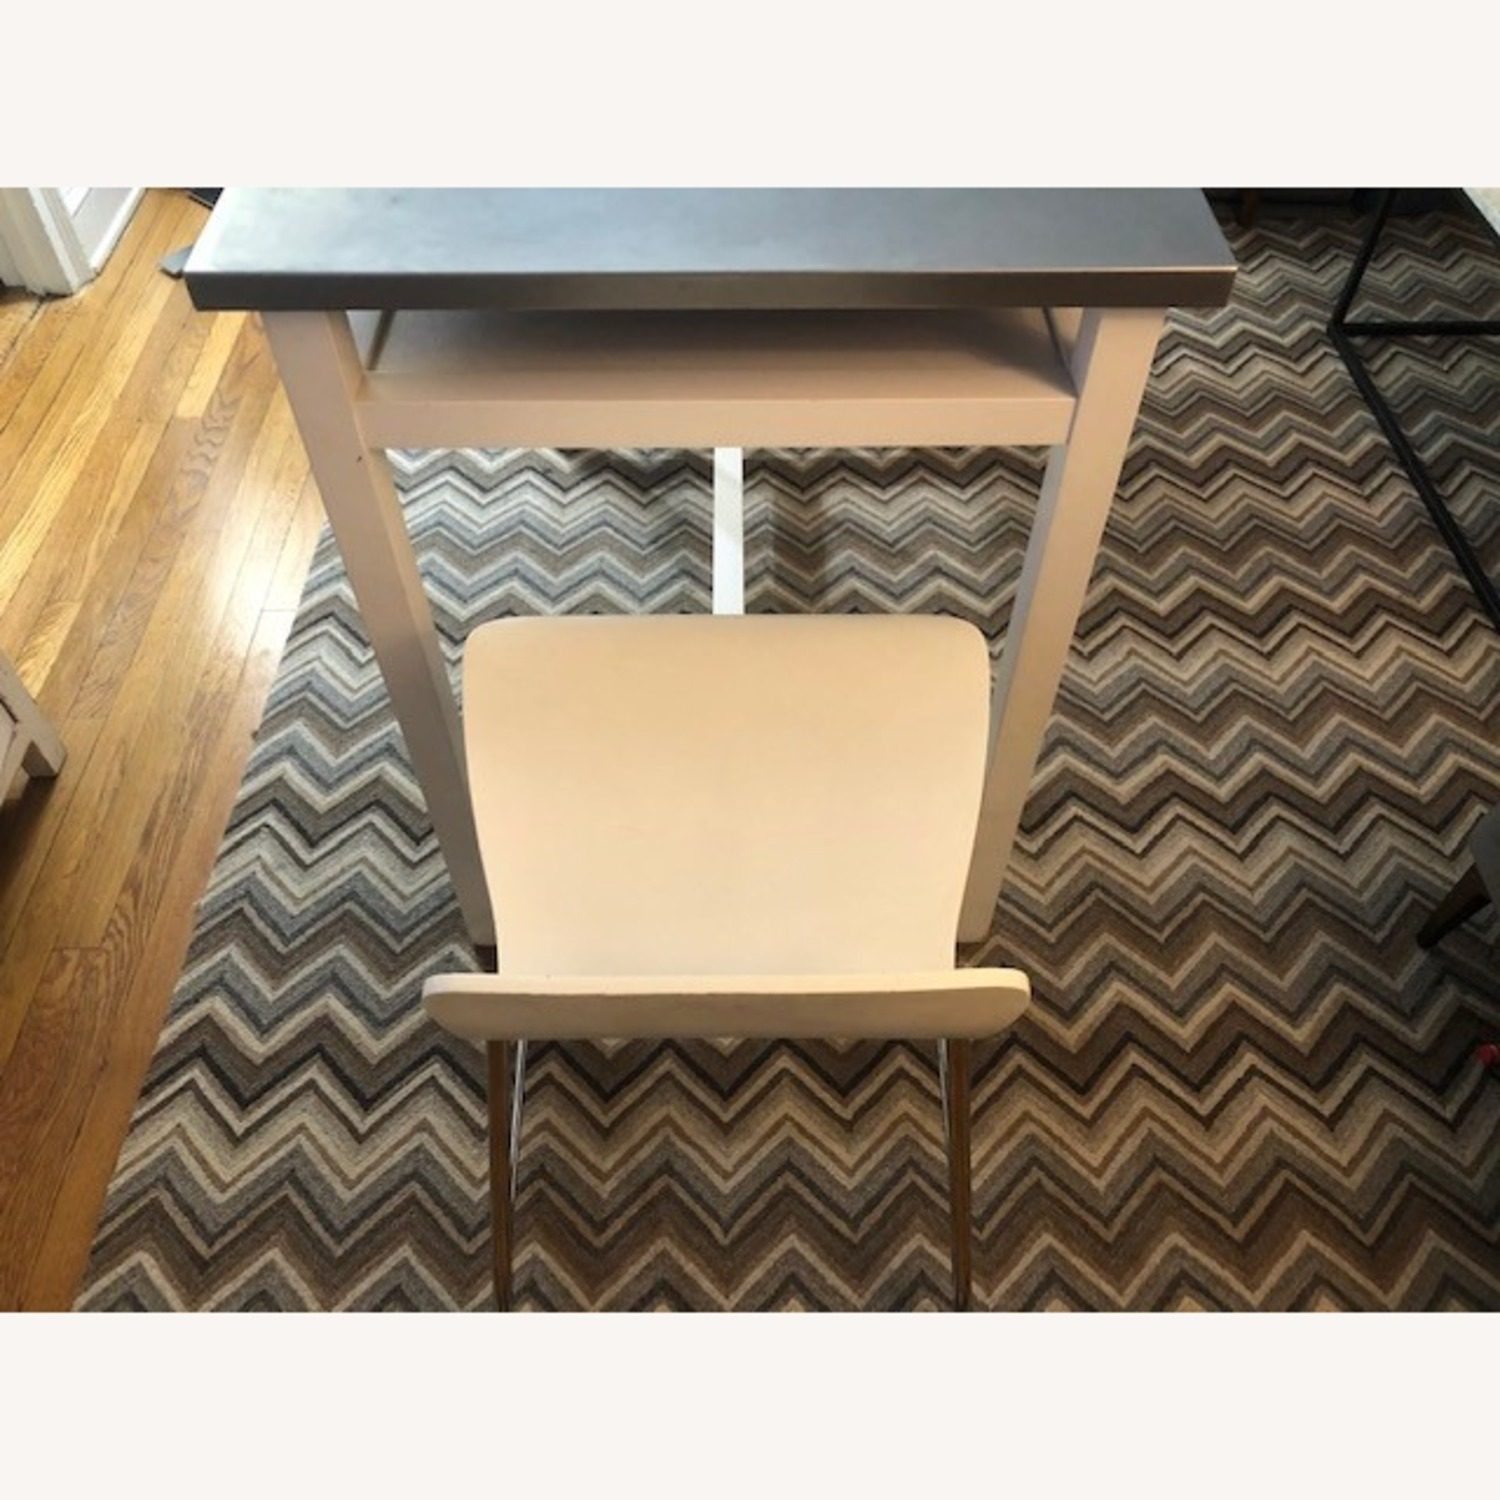 Crate & Barrel Stainless Steel High Top Table - image-7